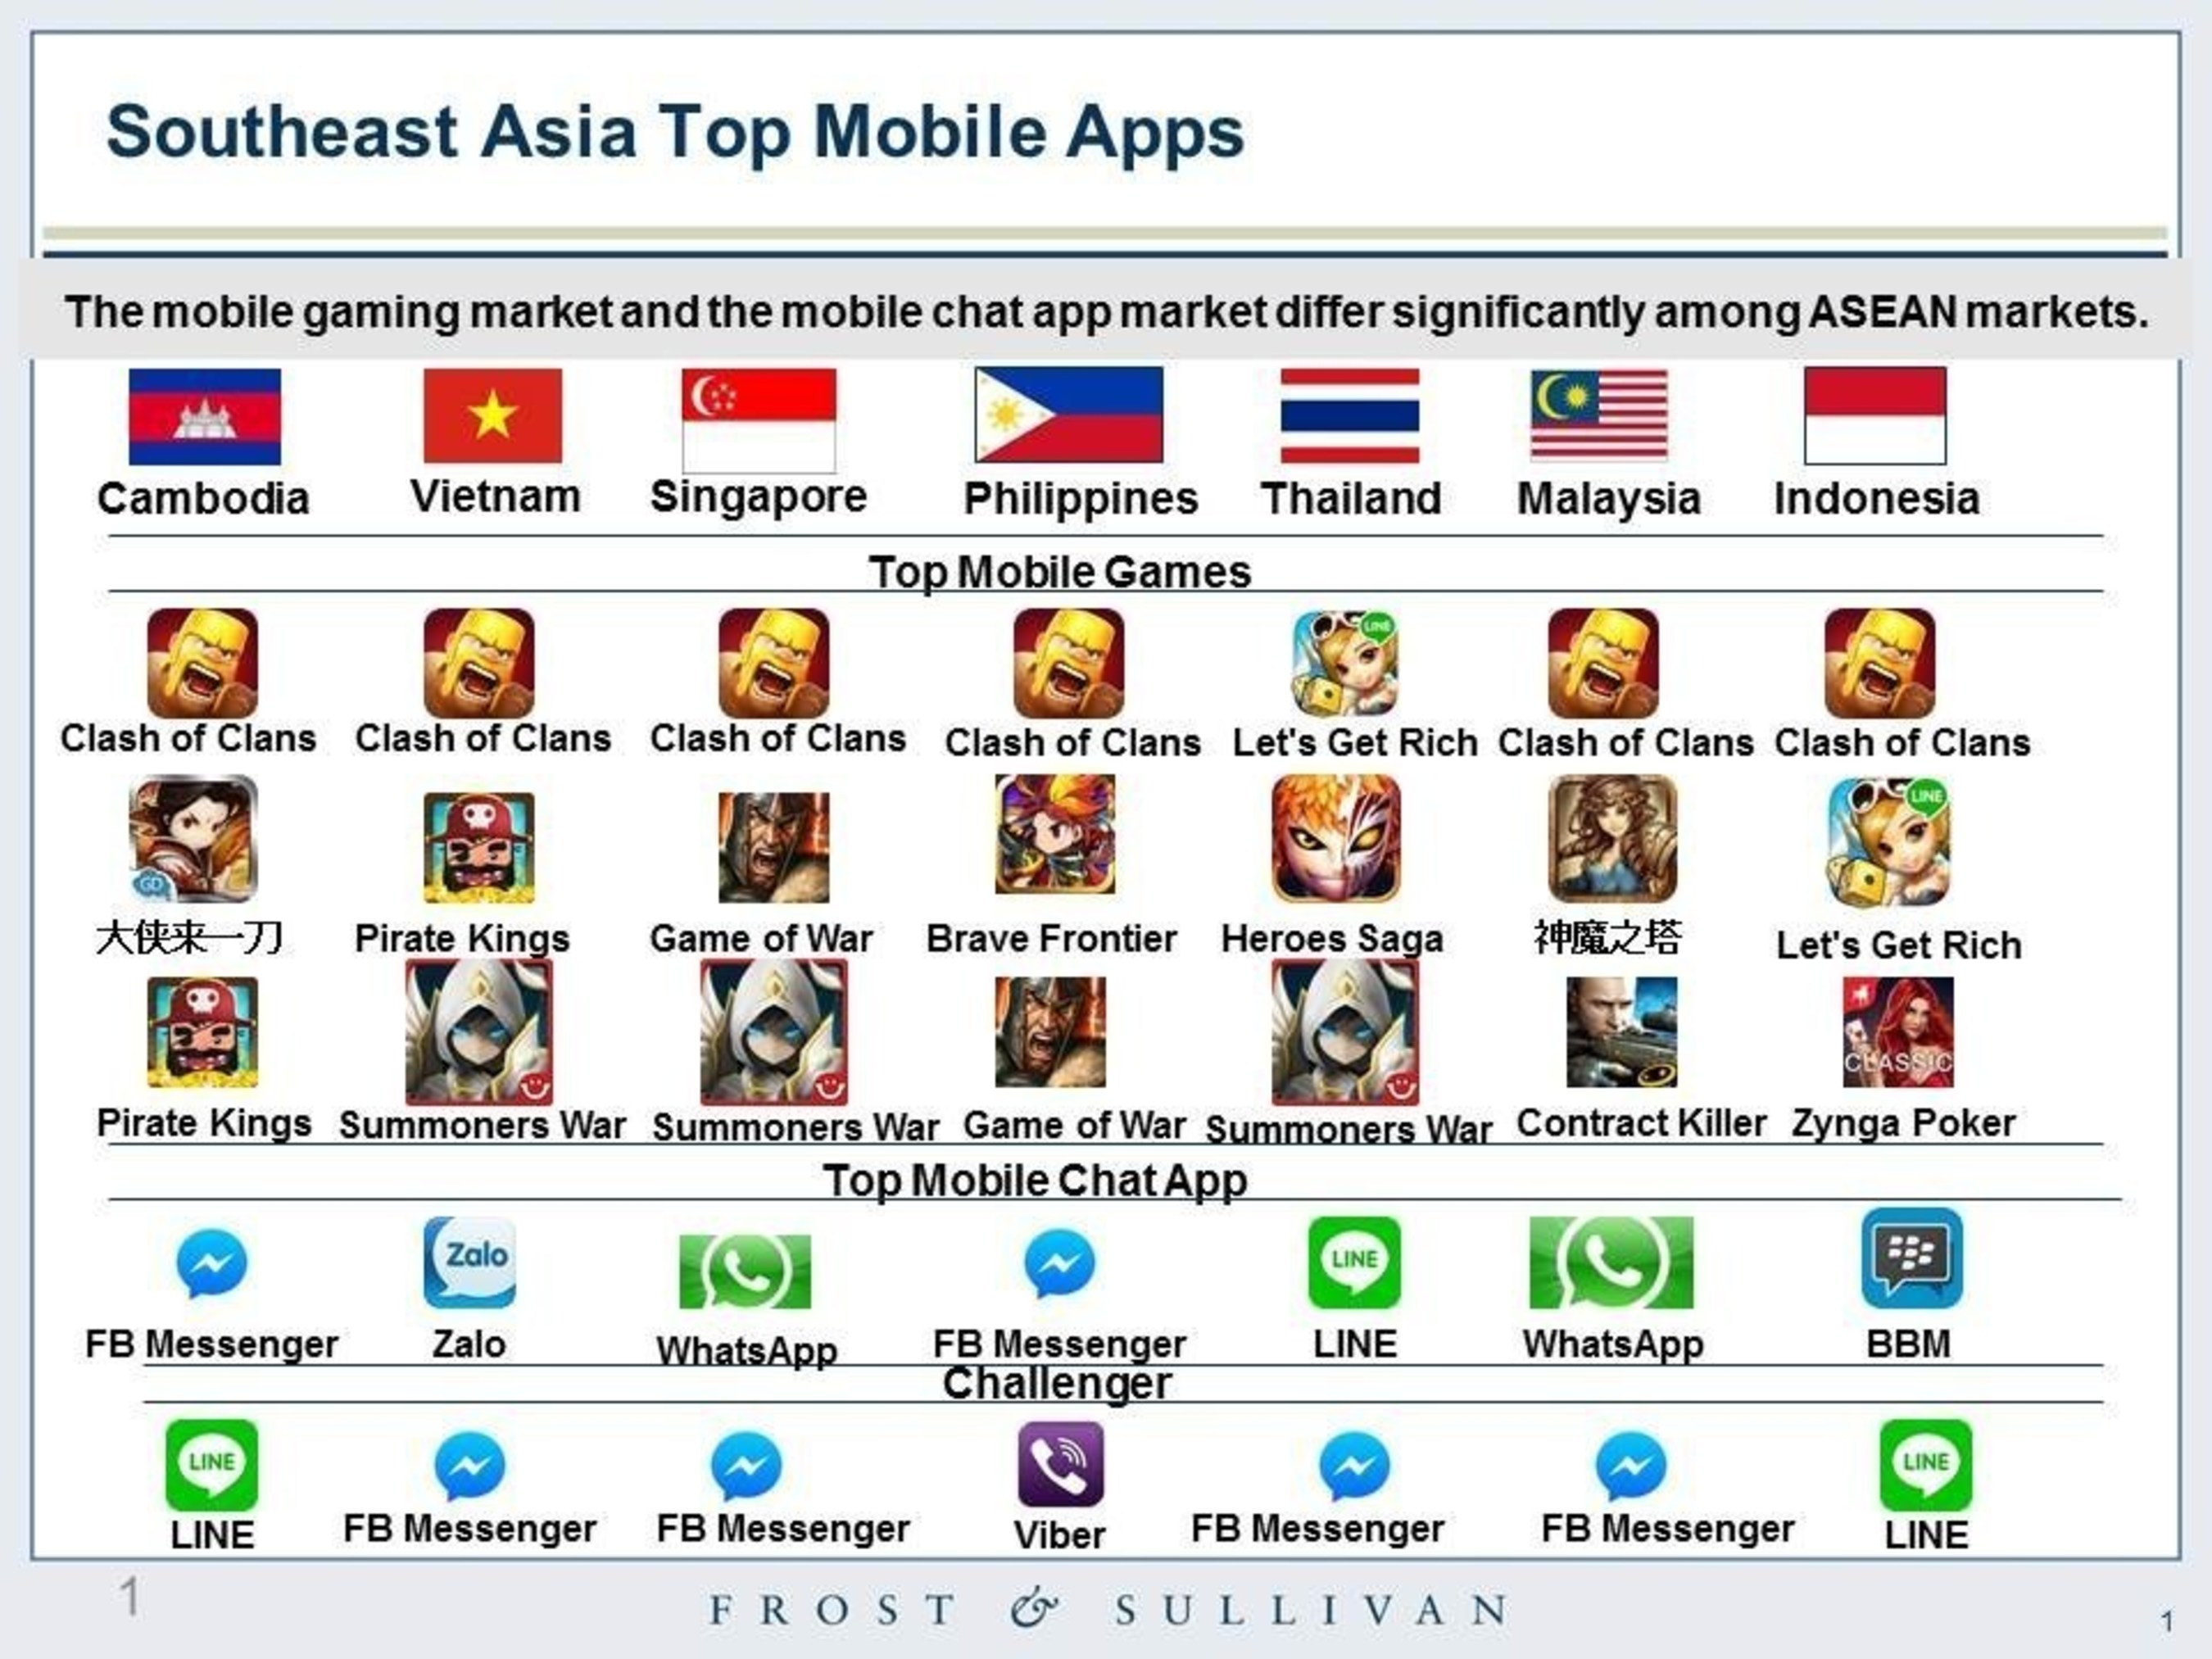 Mobile Gaming revenues to exceed US$7 billion in Southeast Asia by 2019, says Frost & Sullivan